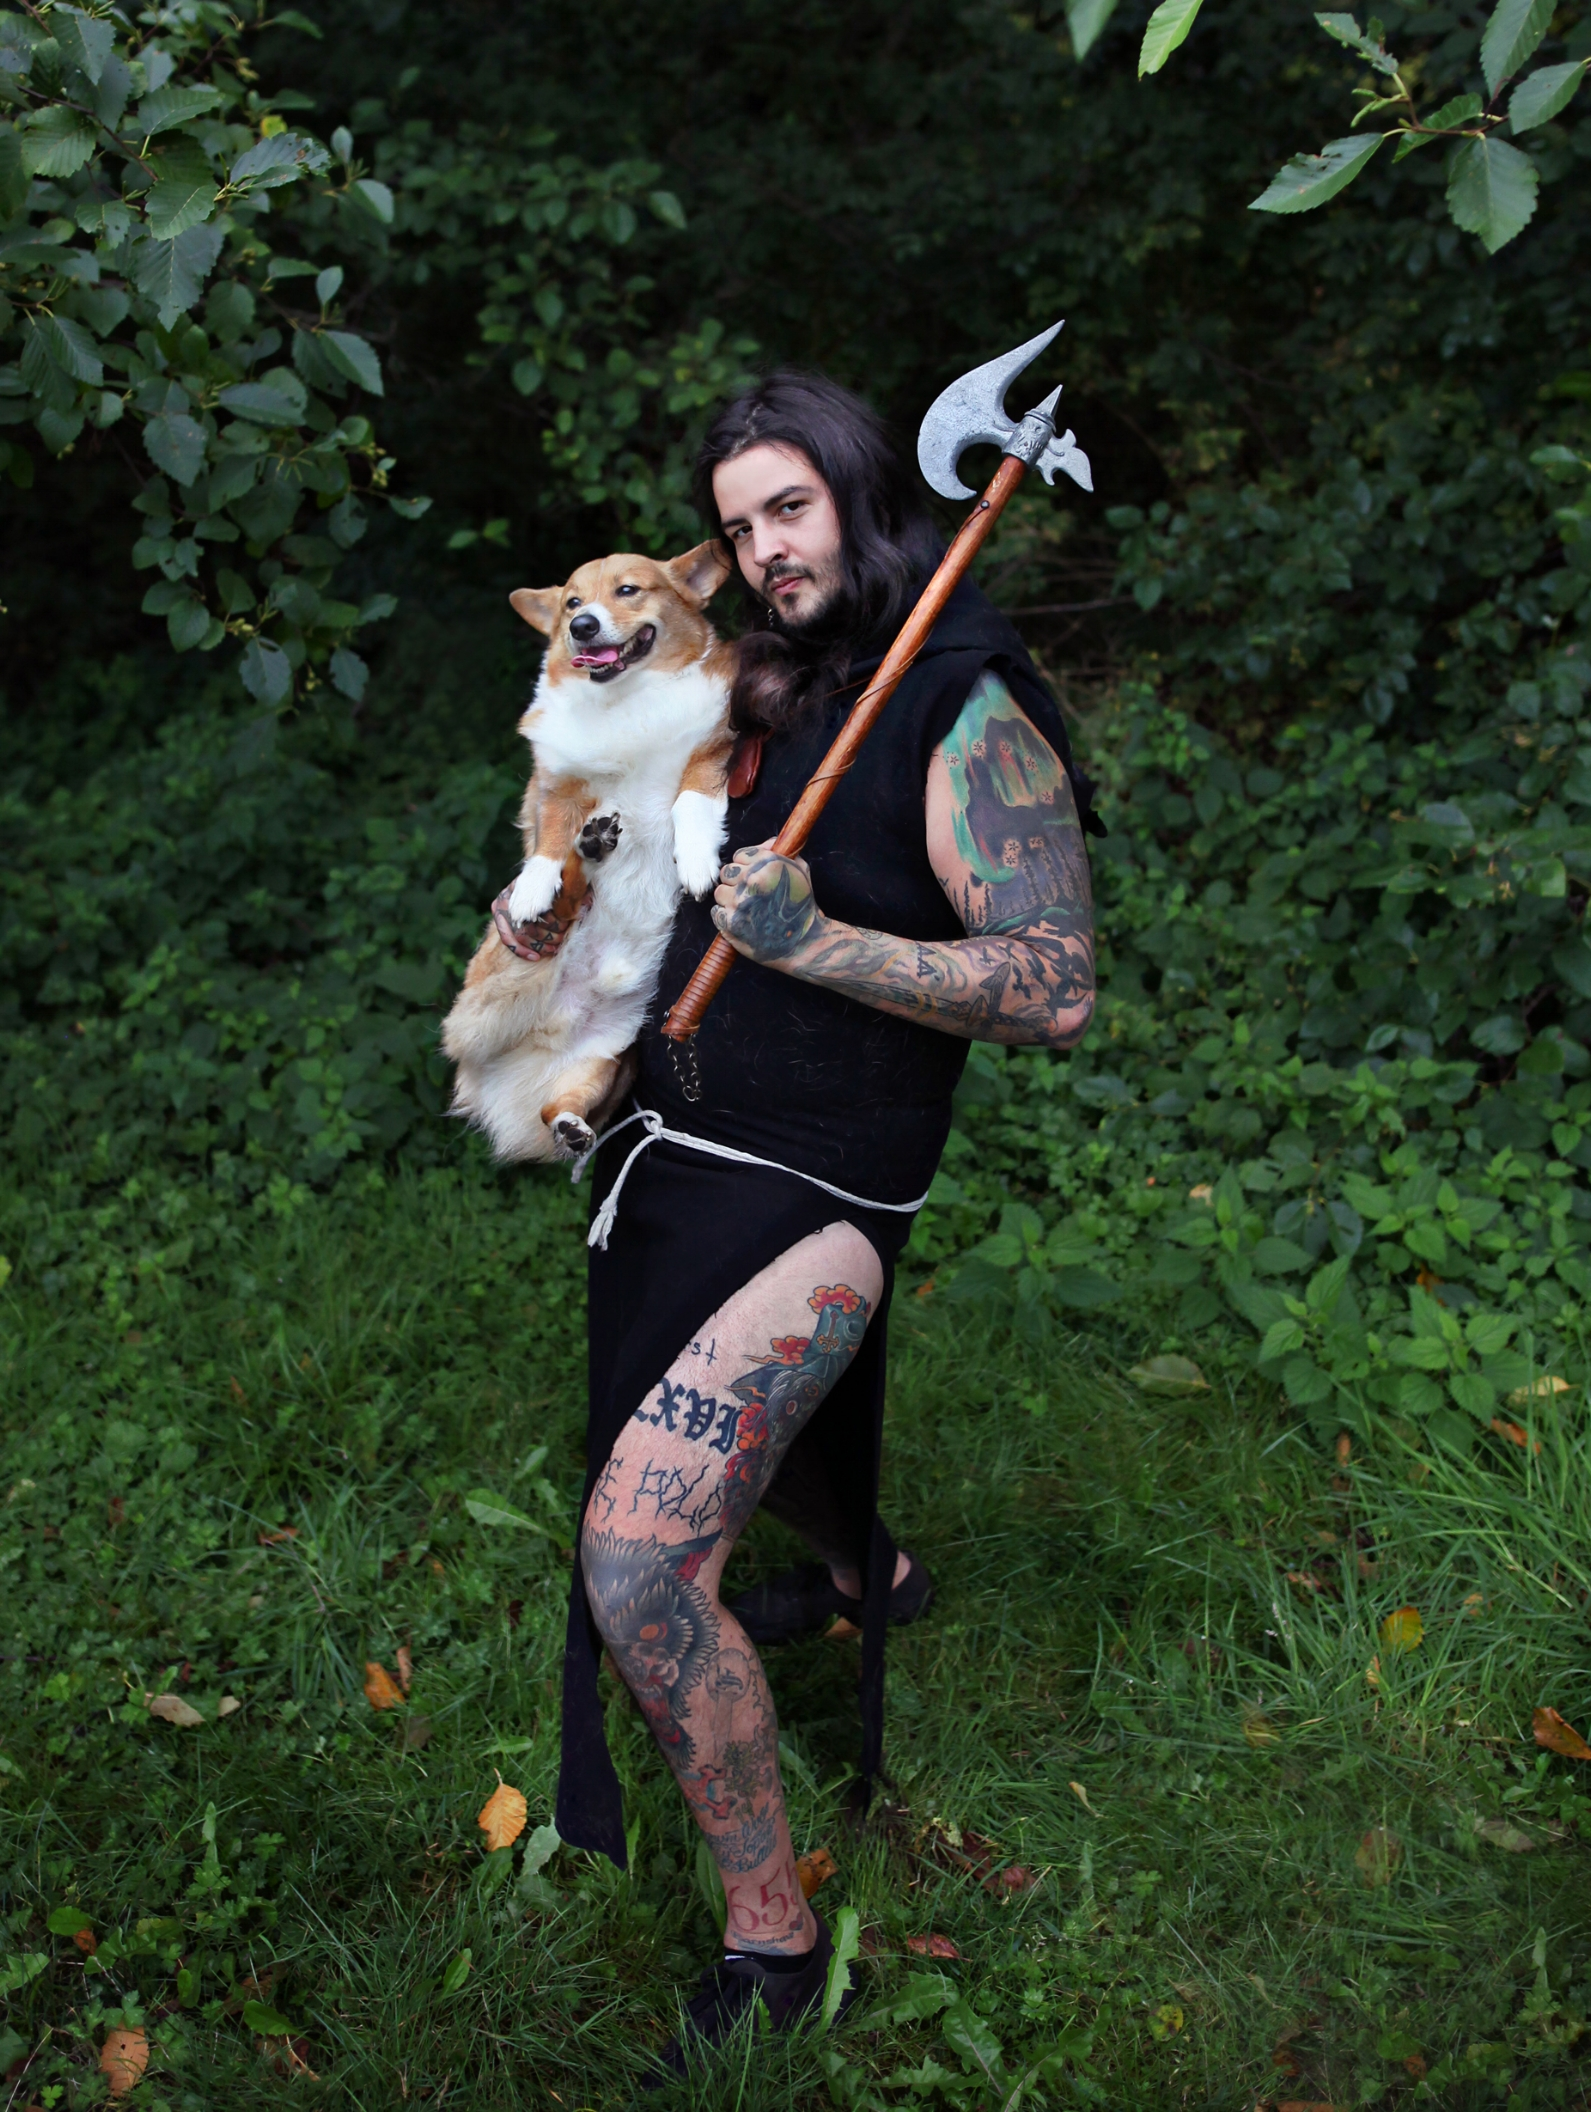 Michael Freiburger, of Throne of Bone, and dog Balrog